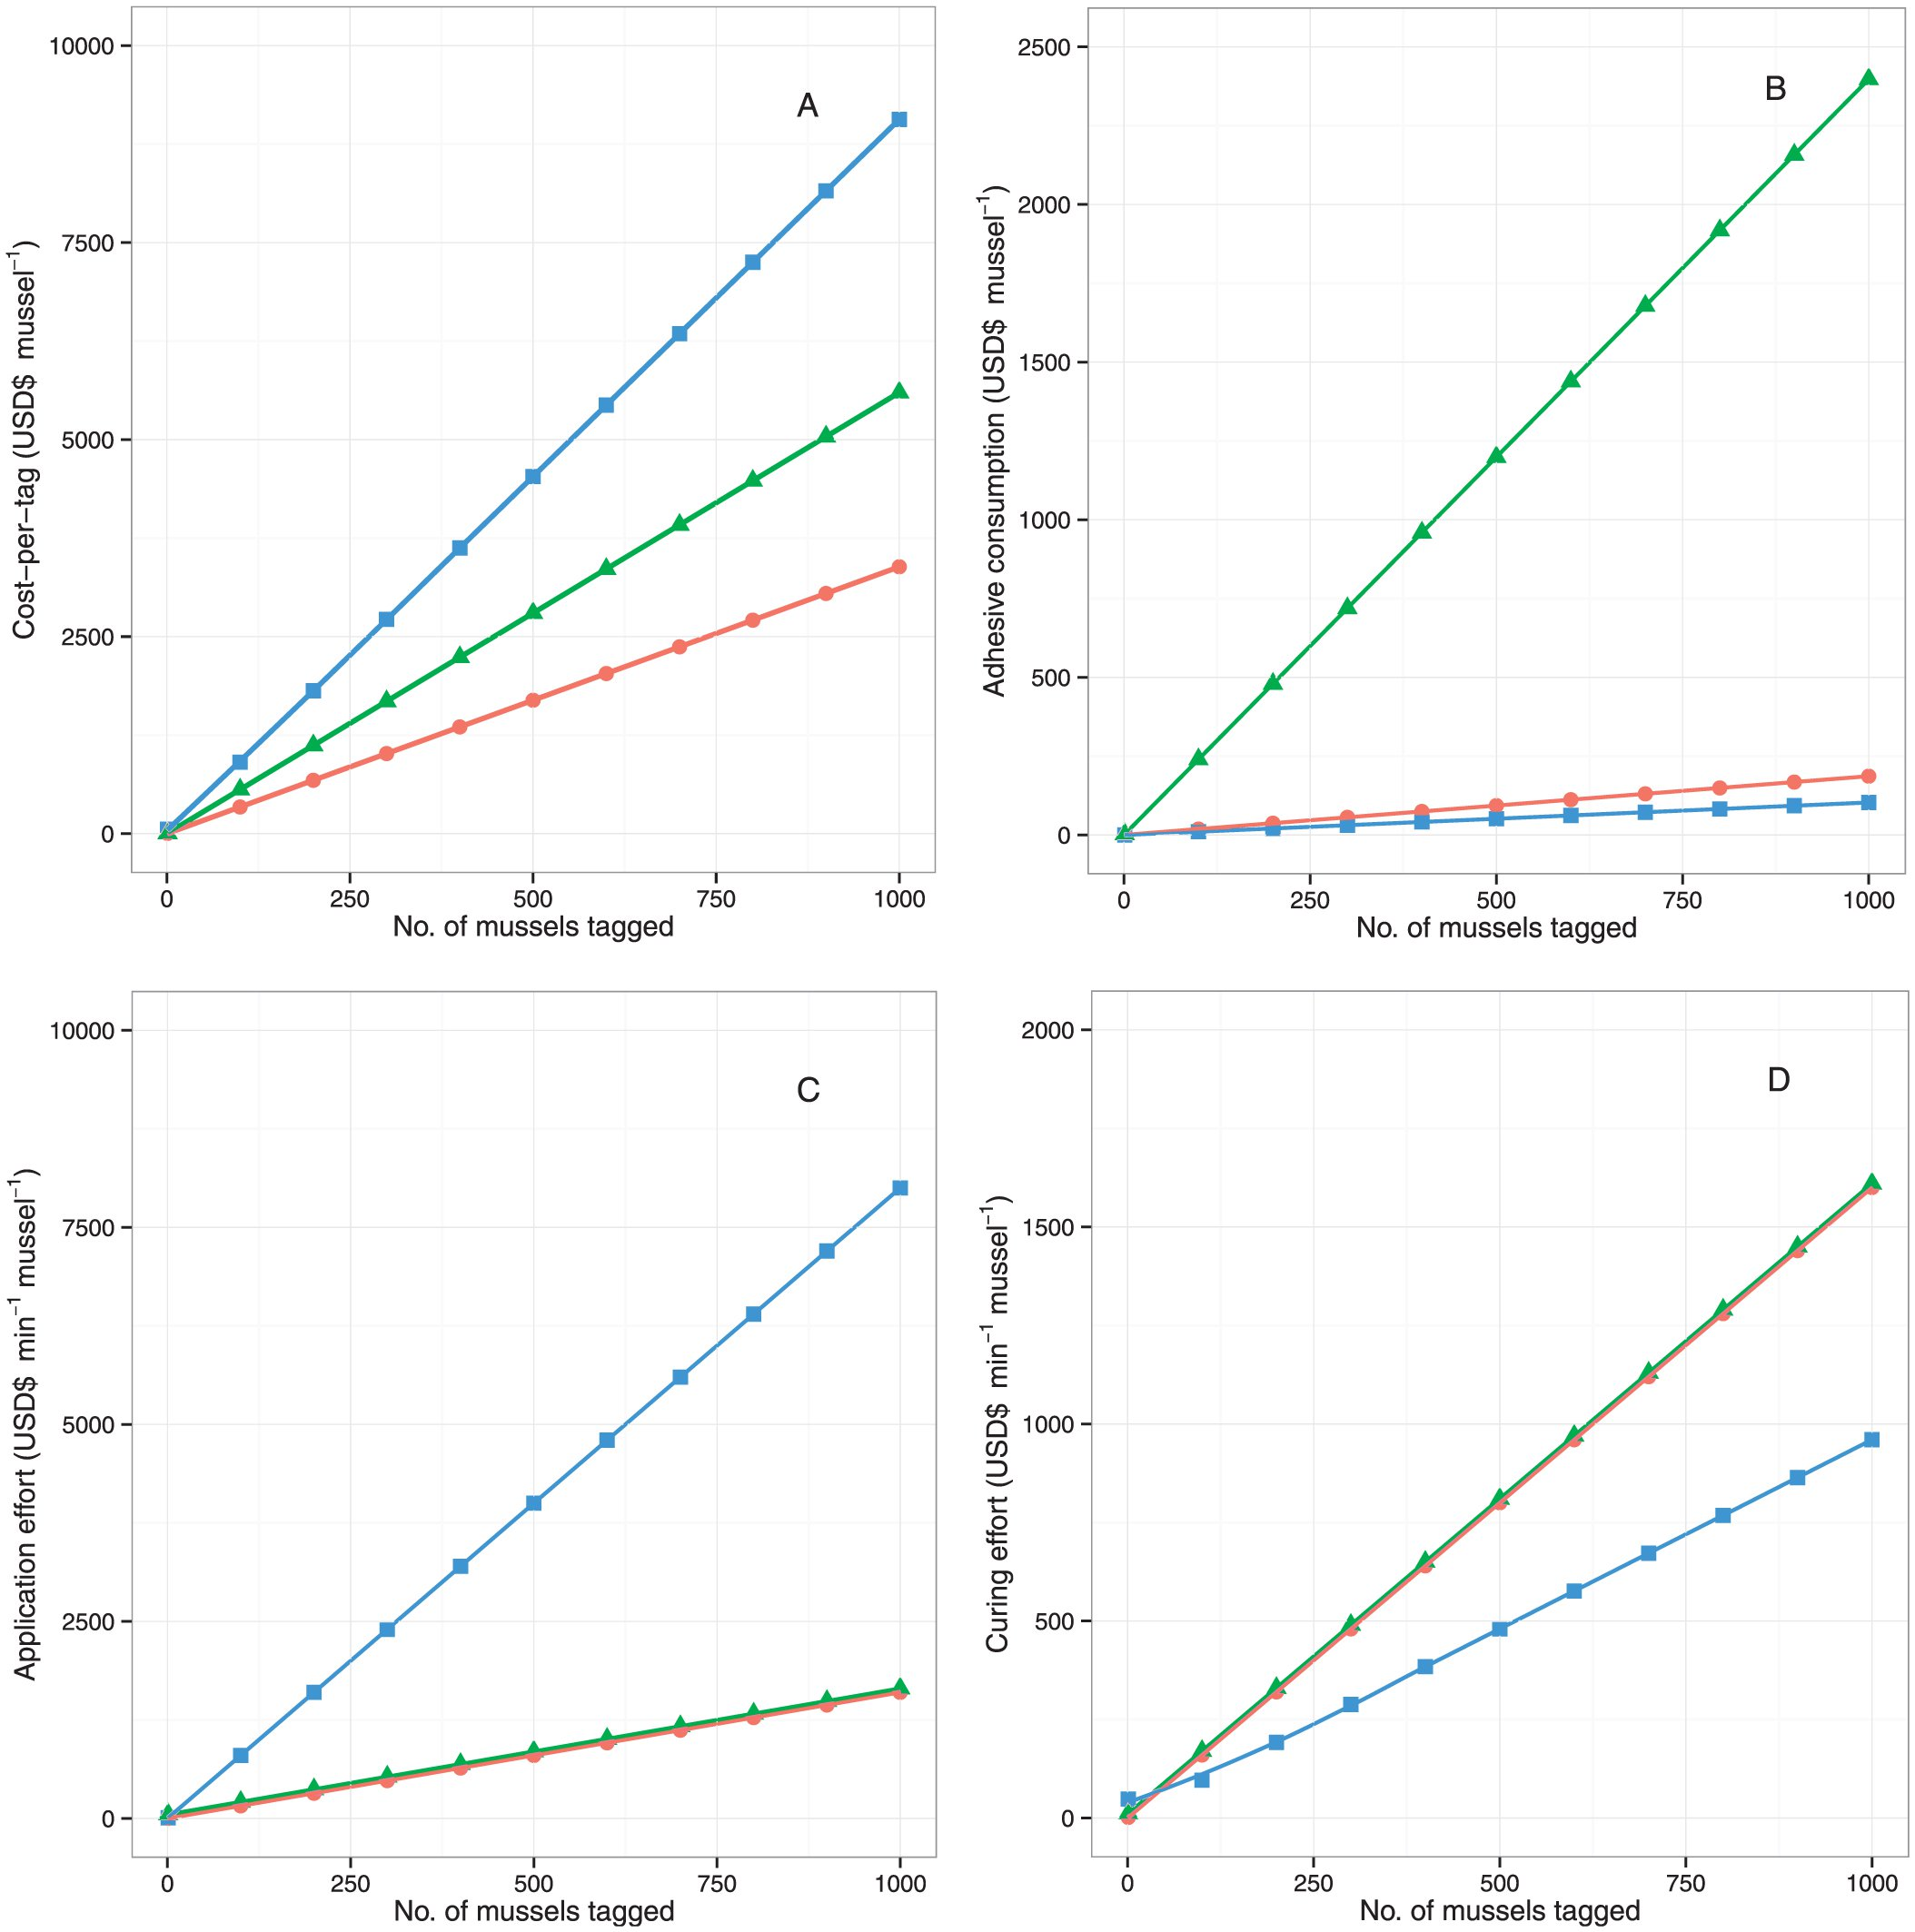 Evaluation of Costs Associated with Externally Affixing Pit